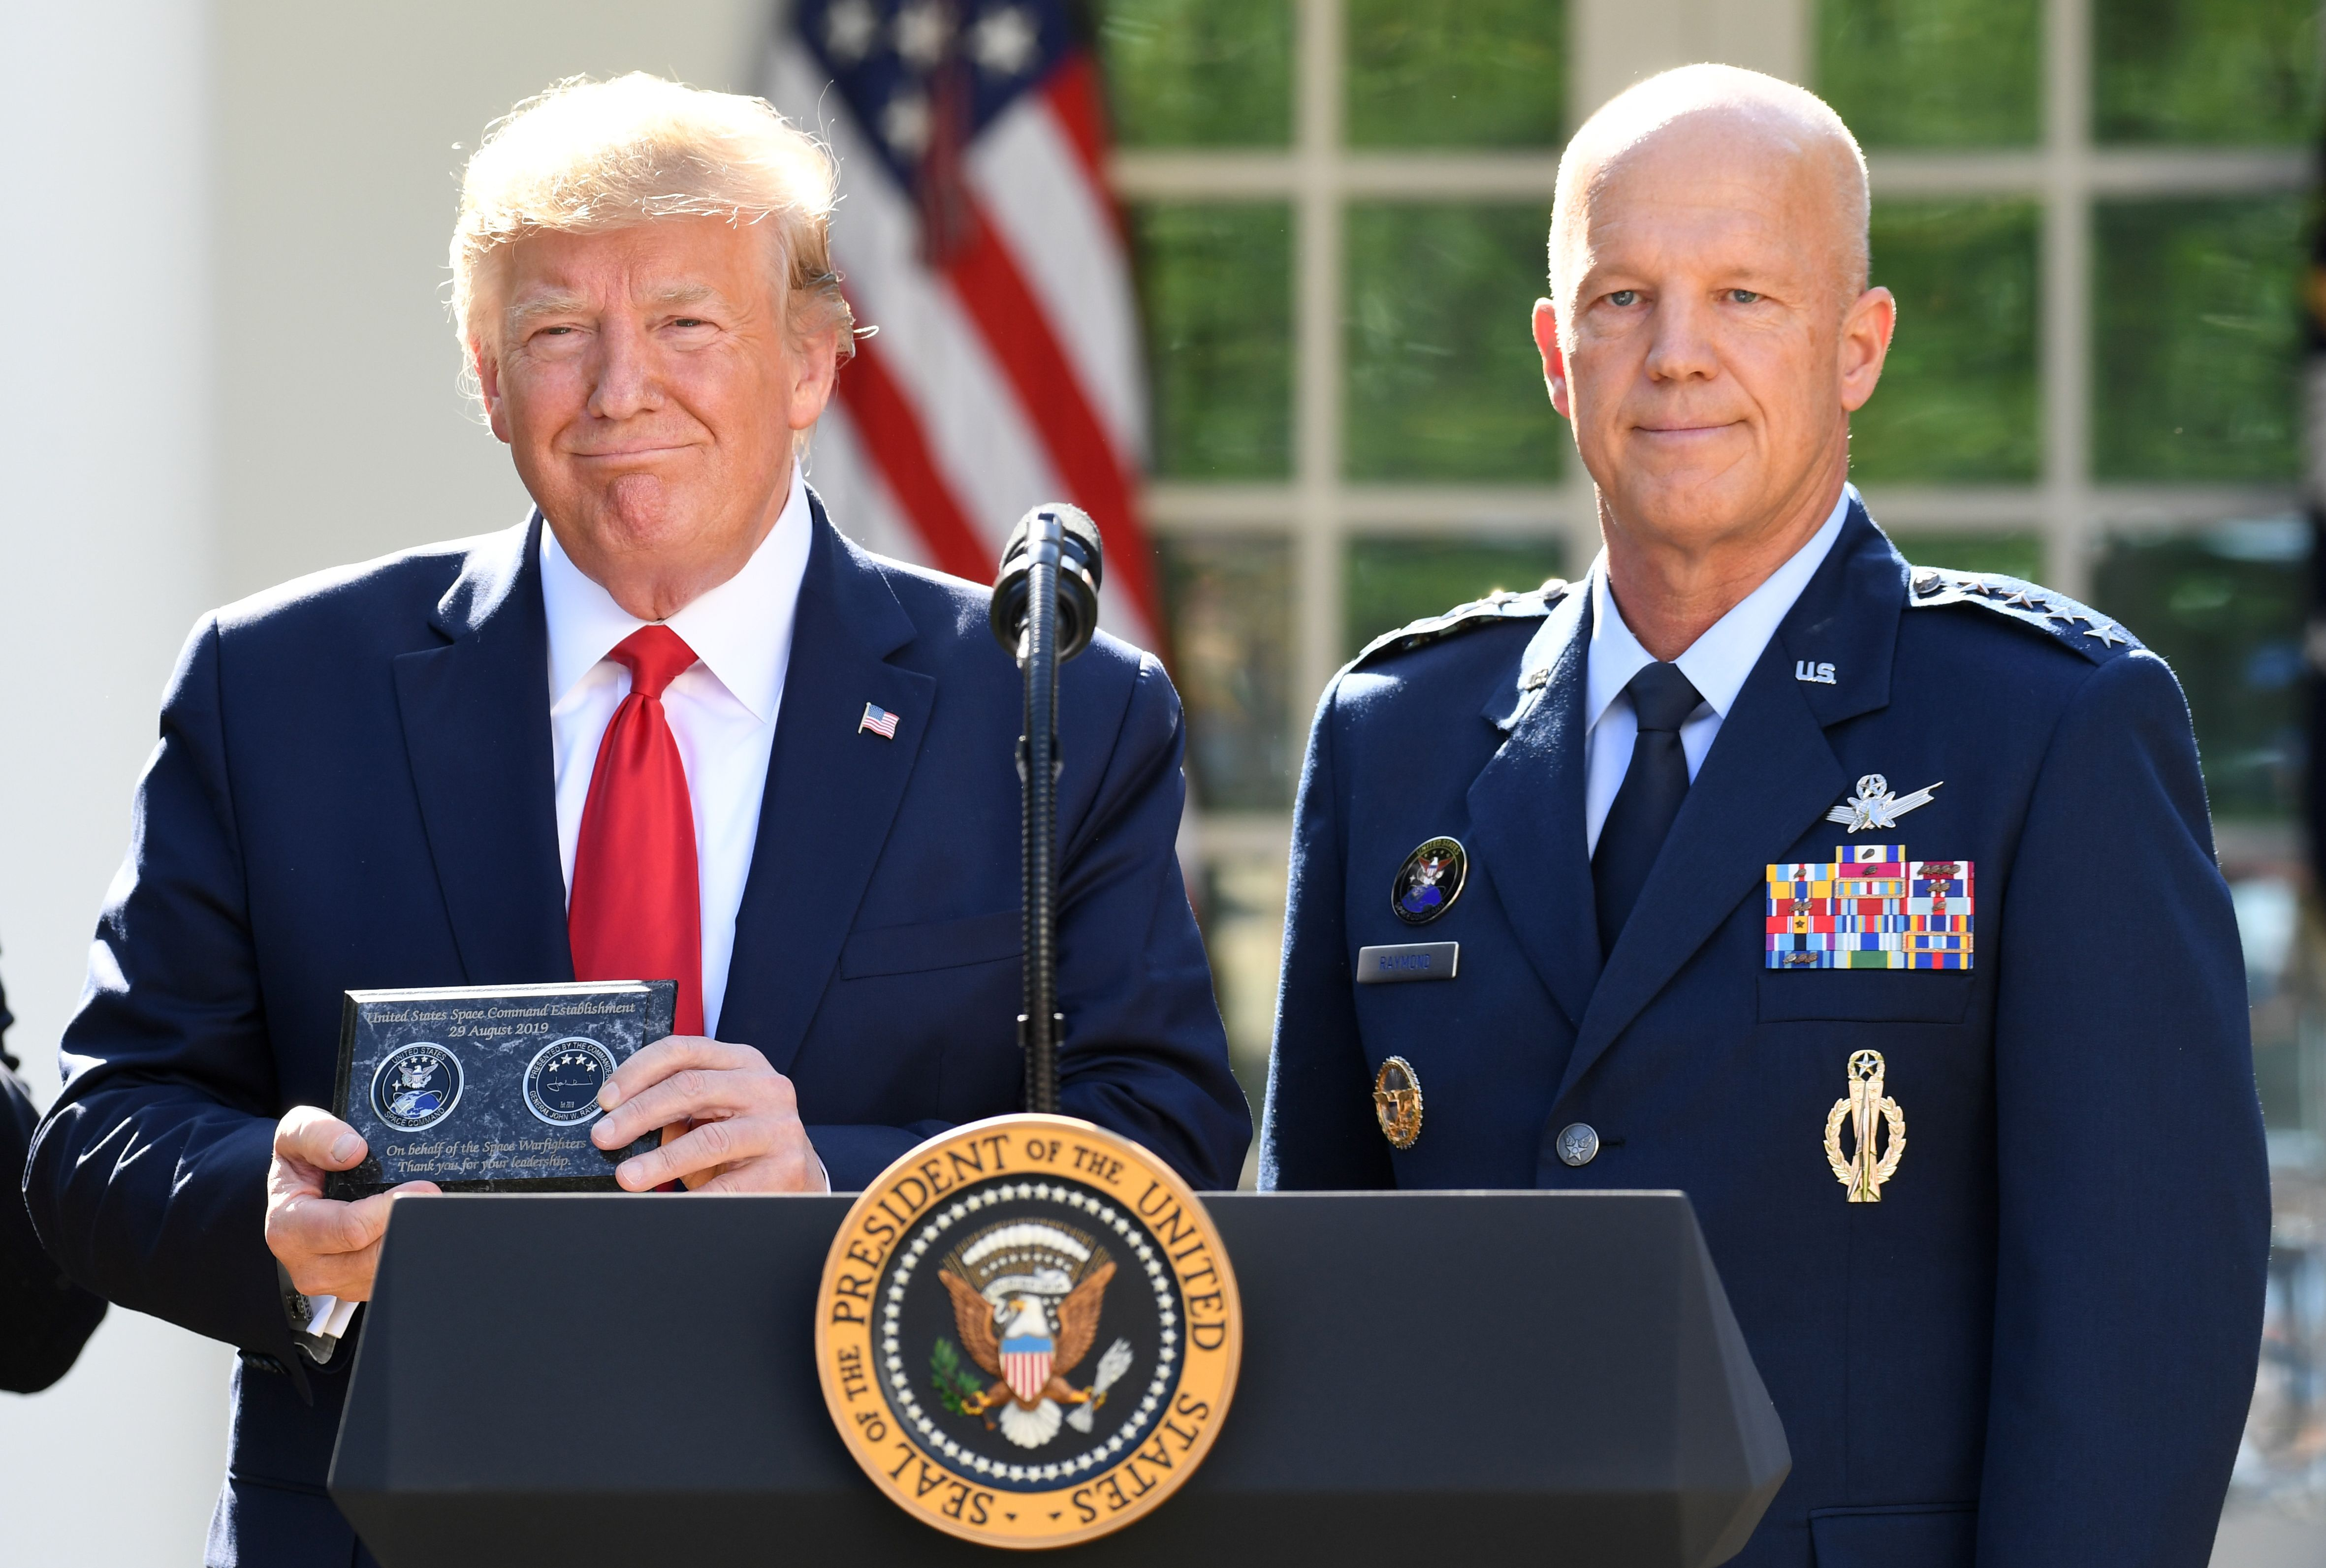 Space Command Chief Outlines Advances as Space War-Fighting Threats Mount